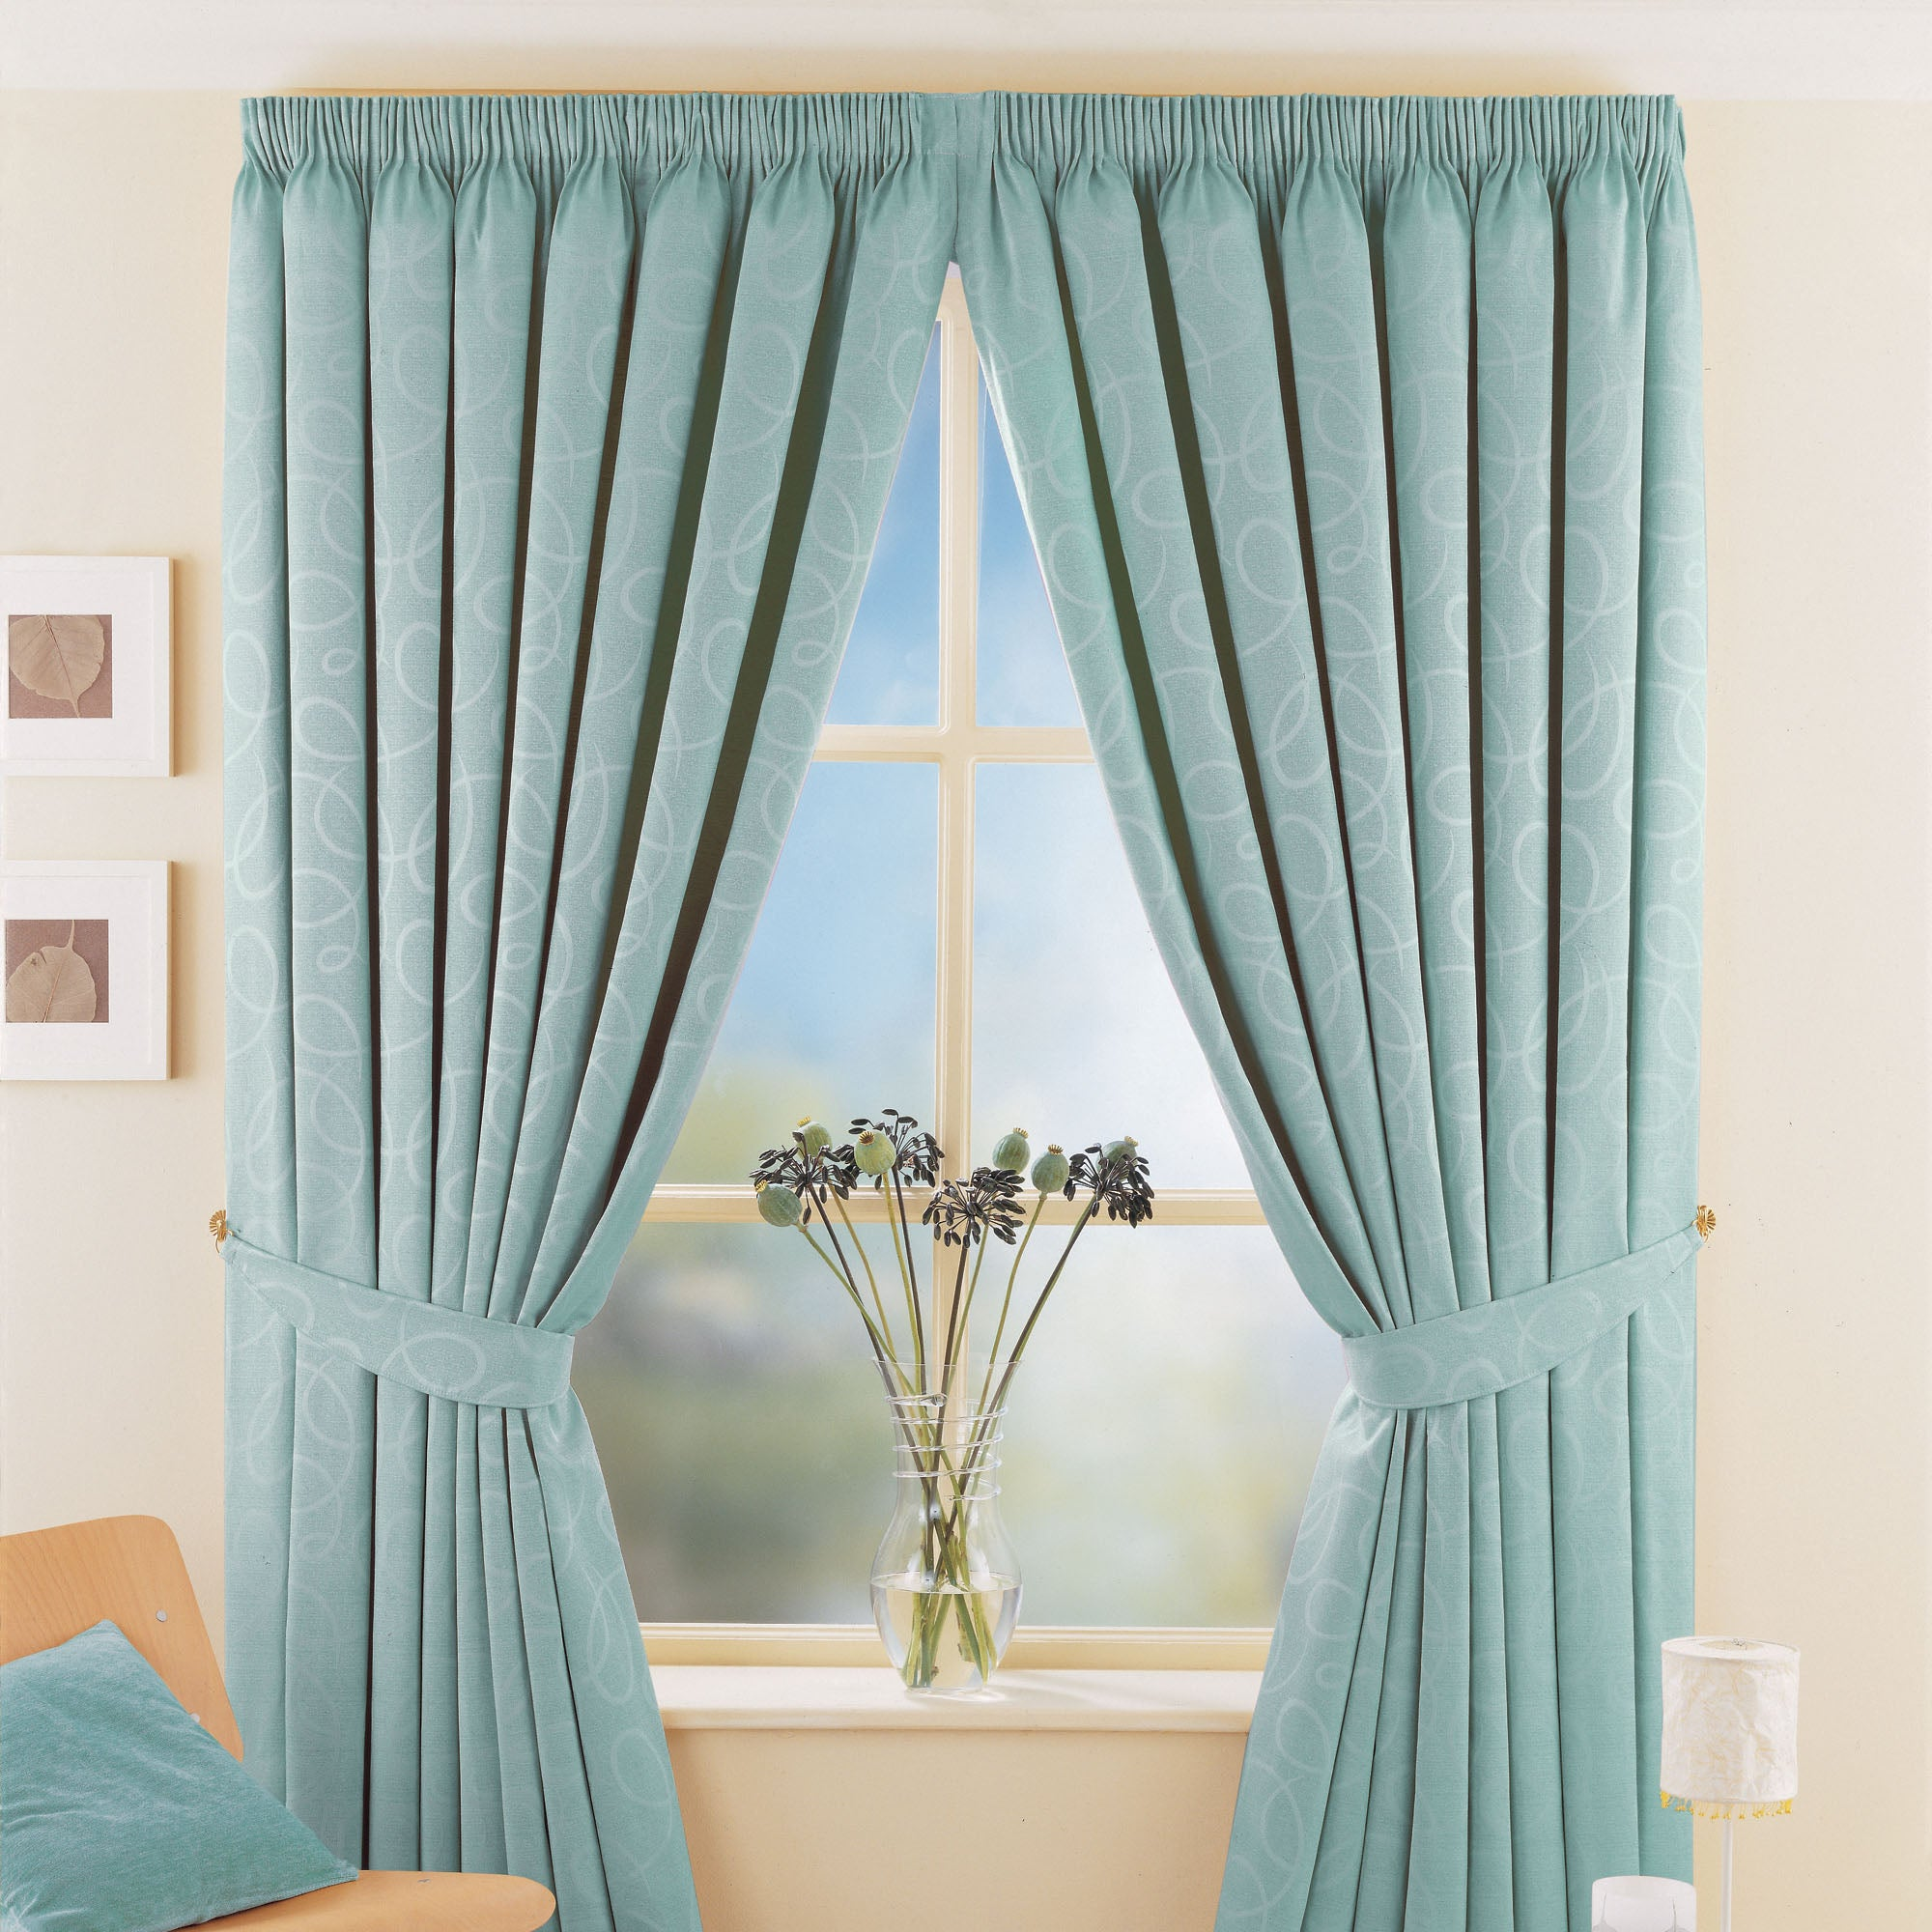 Best curtains prices in curtains blinds online for Space fabric dunelm